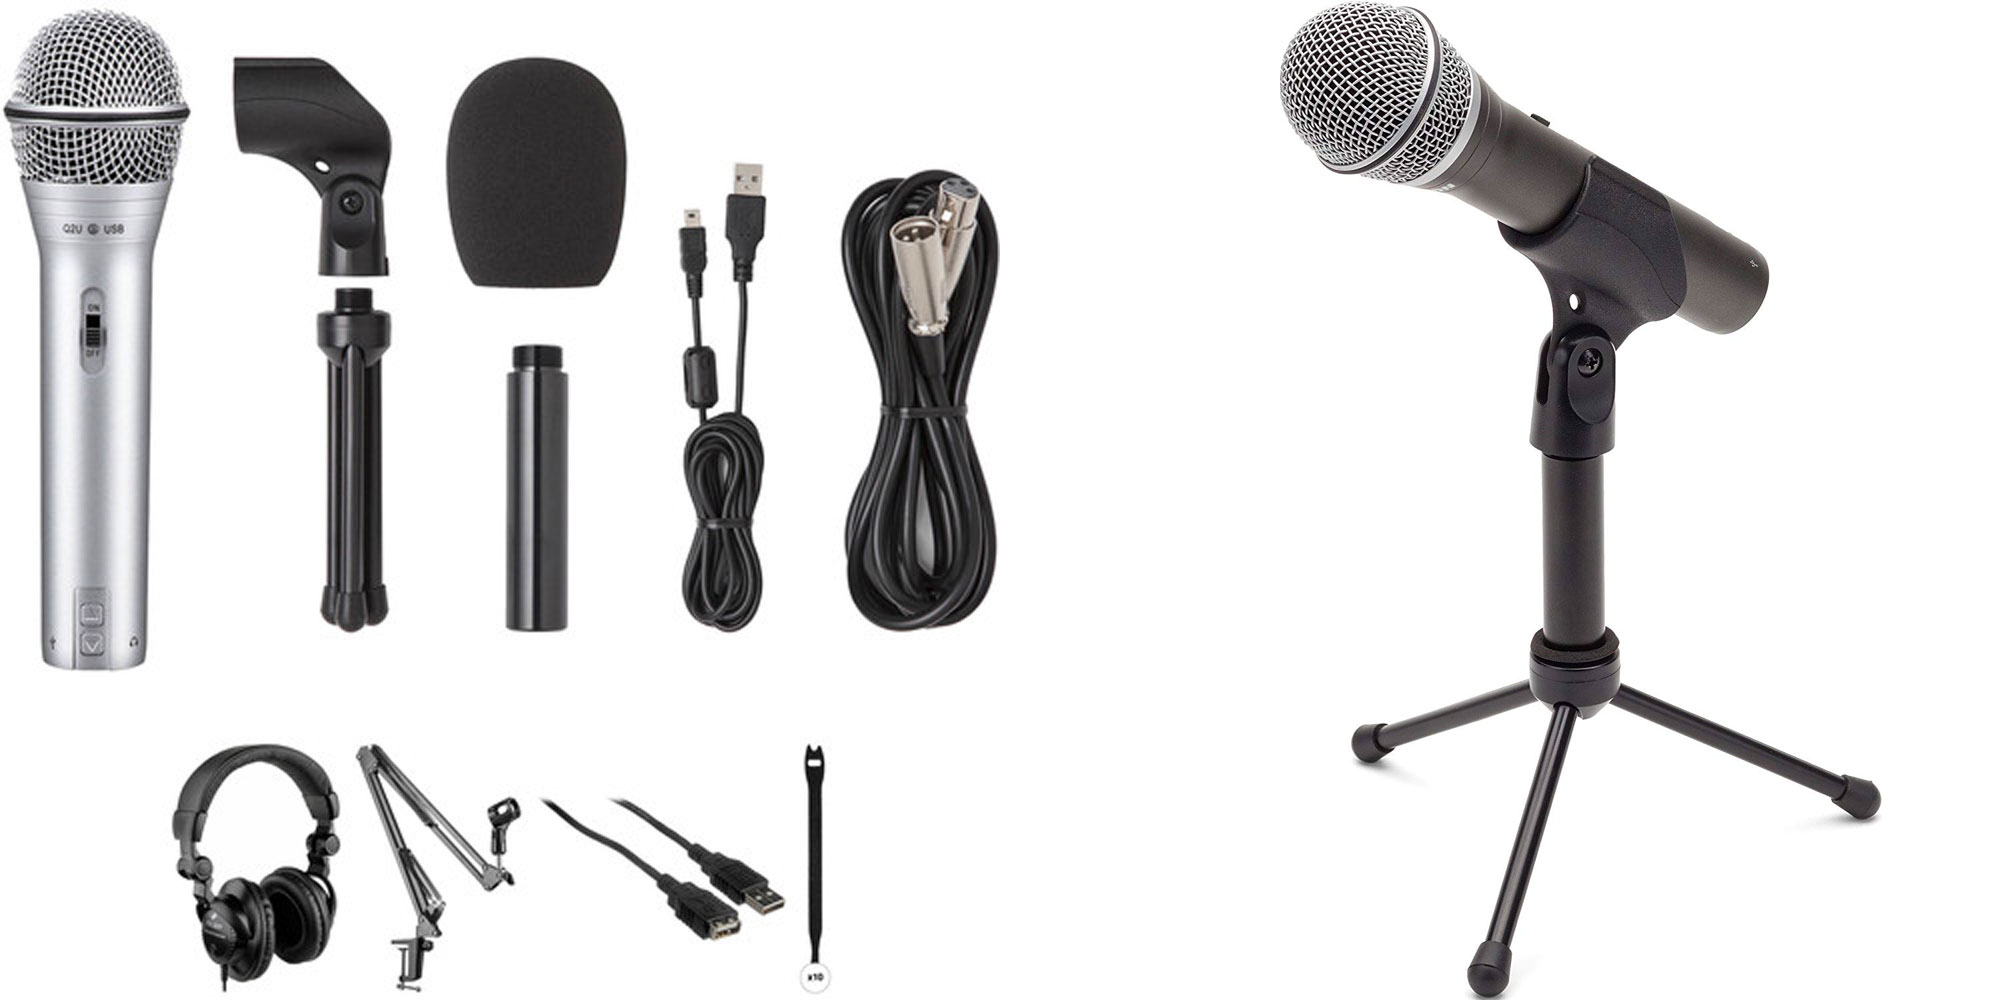 Begin a podcasting, voiceover, or YouTube career w/ Samson's Q2U USB bundle: $70 ($115+ value)